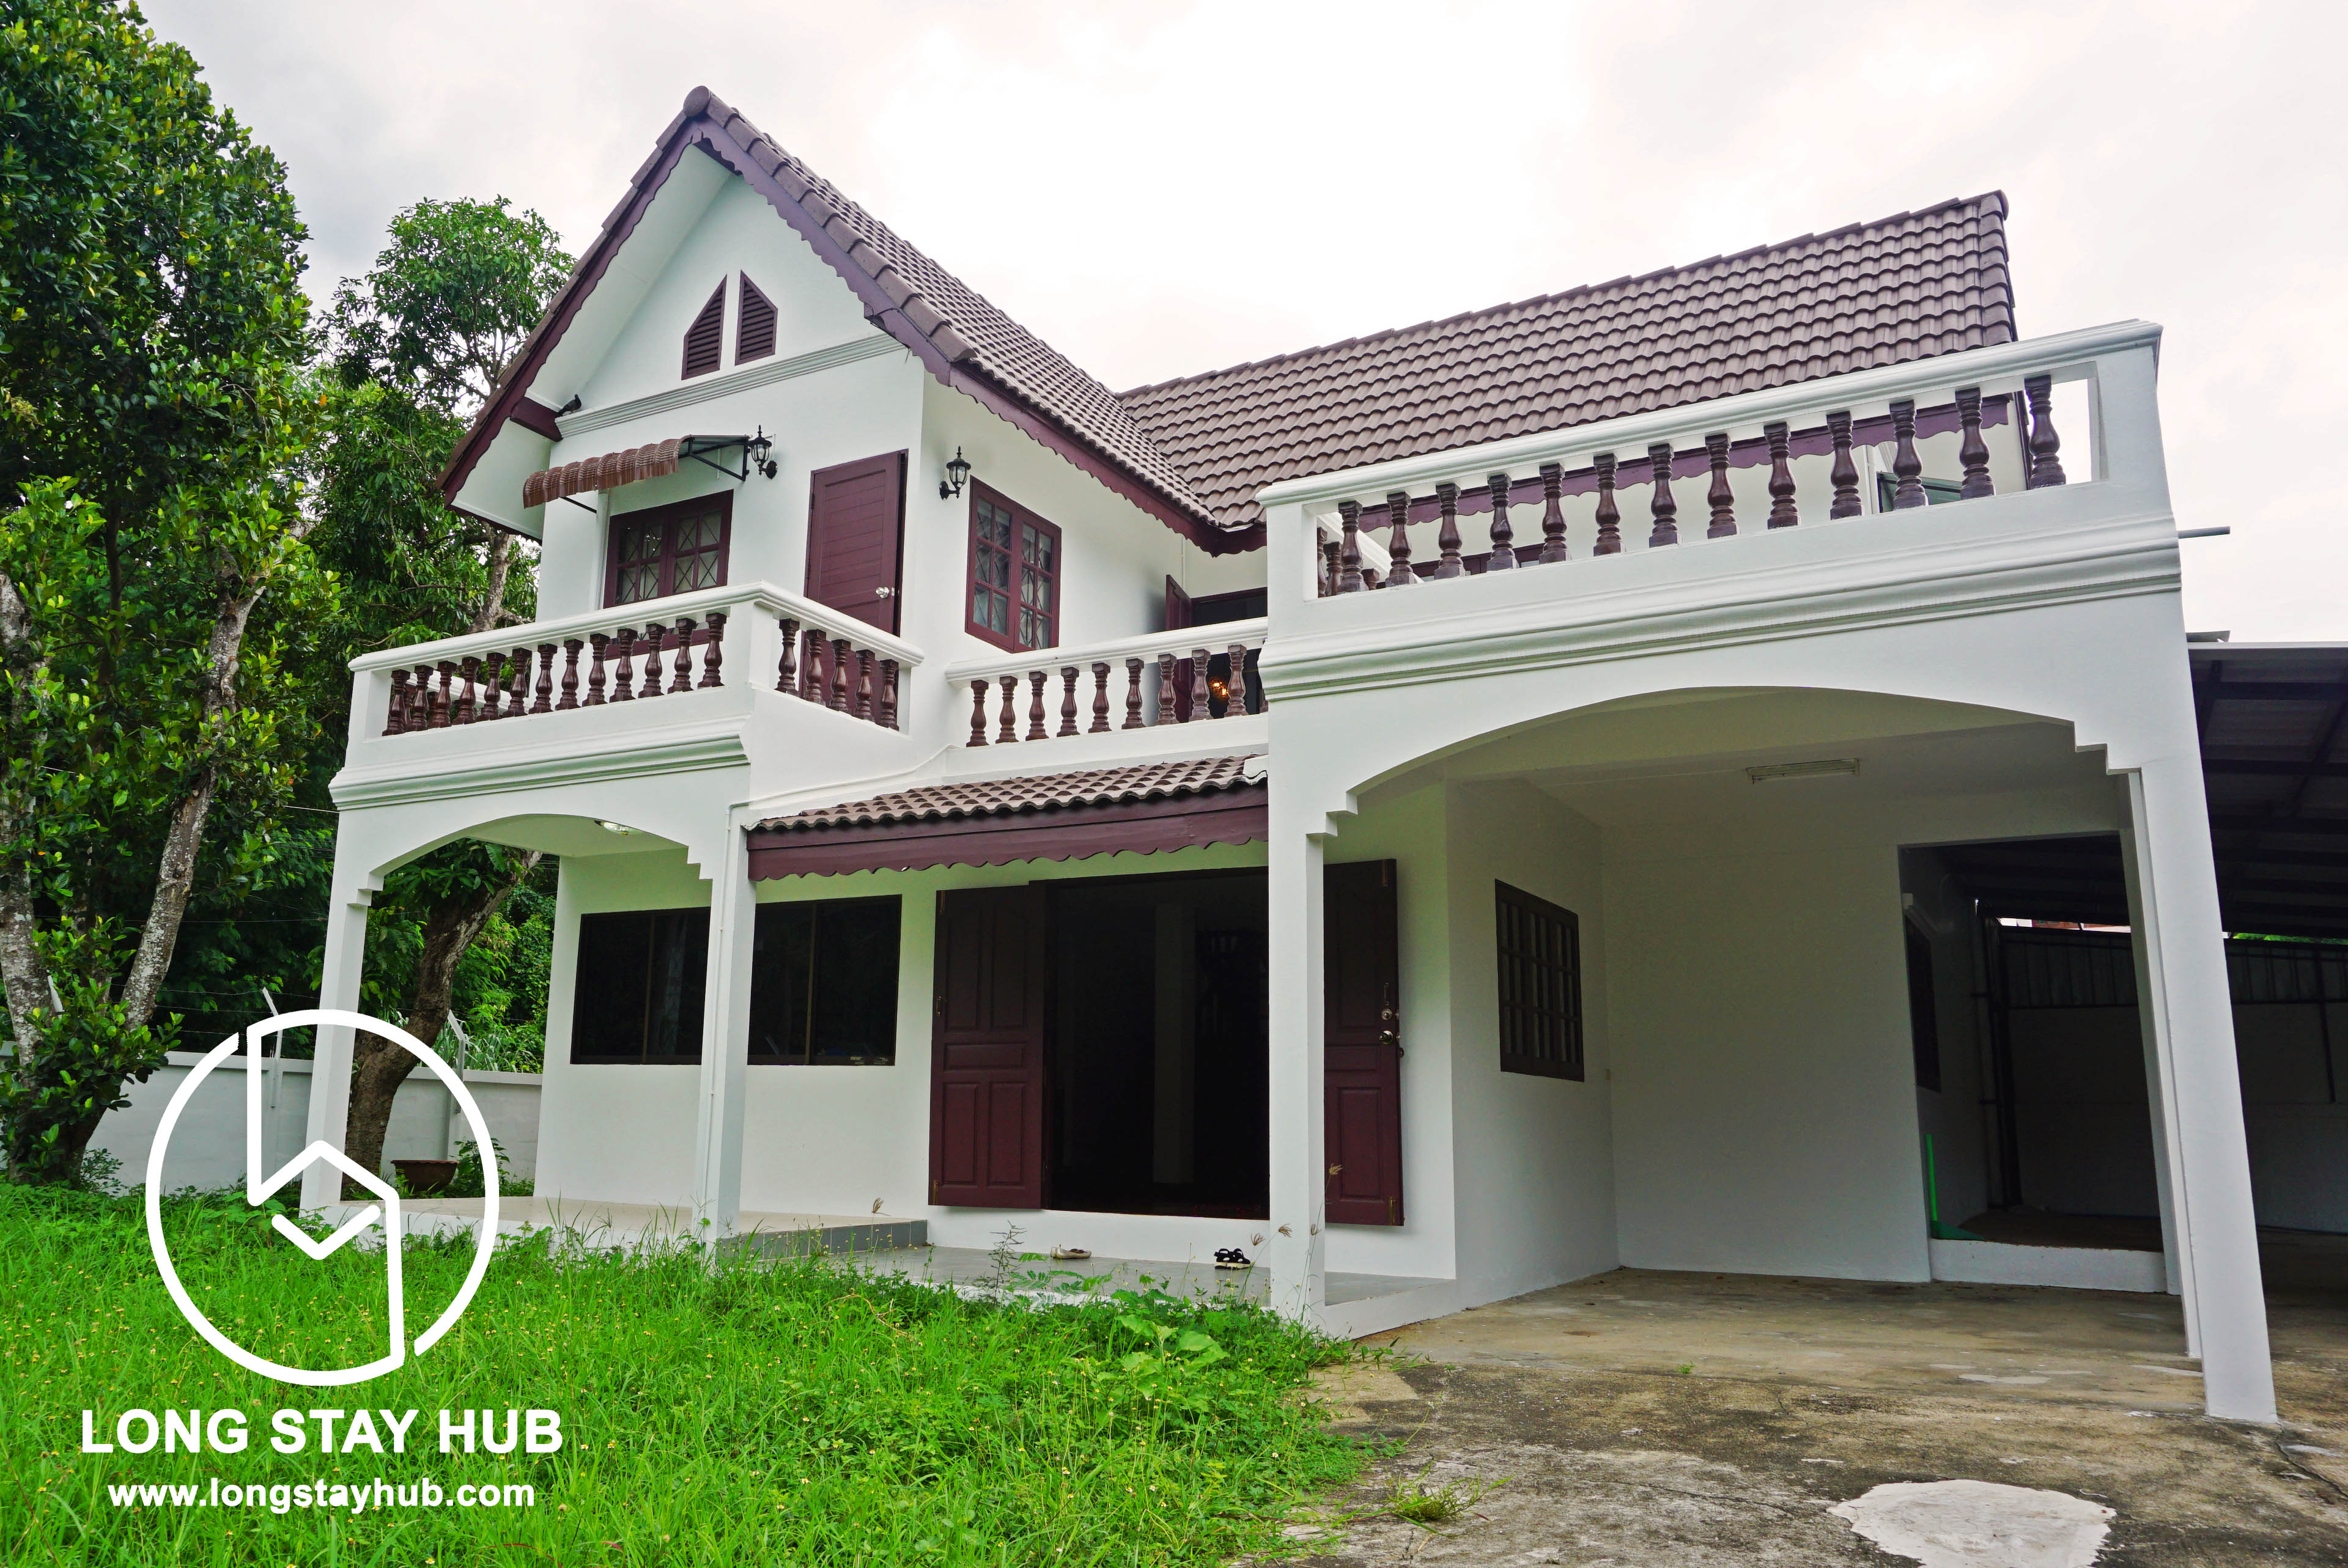 (RENTED) 2-Bedroom house with lush green garden on Chang Phueak